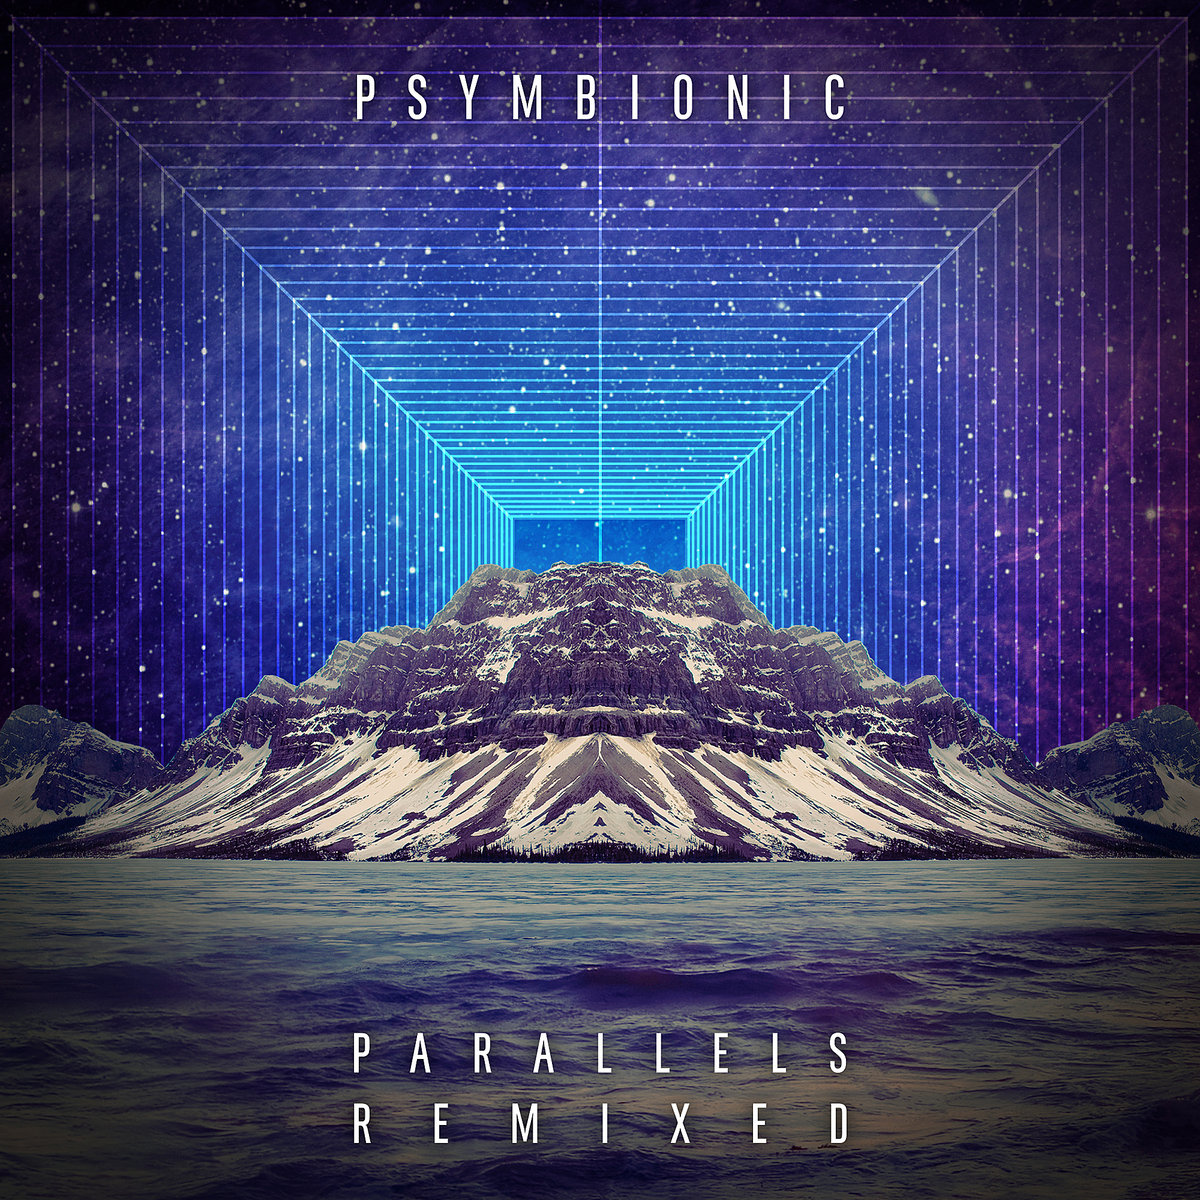 Psymbionic feat. The Digital Connection - Sonder (Schlang Remix) @ 'Parallels Remixed' album (Austin)